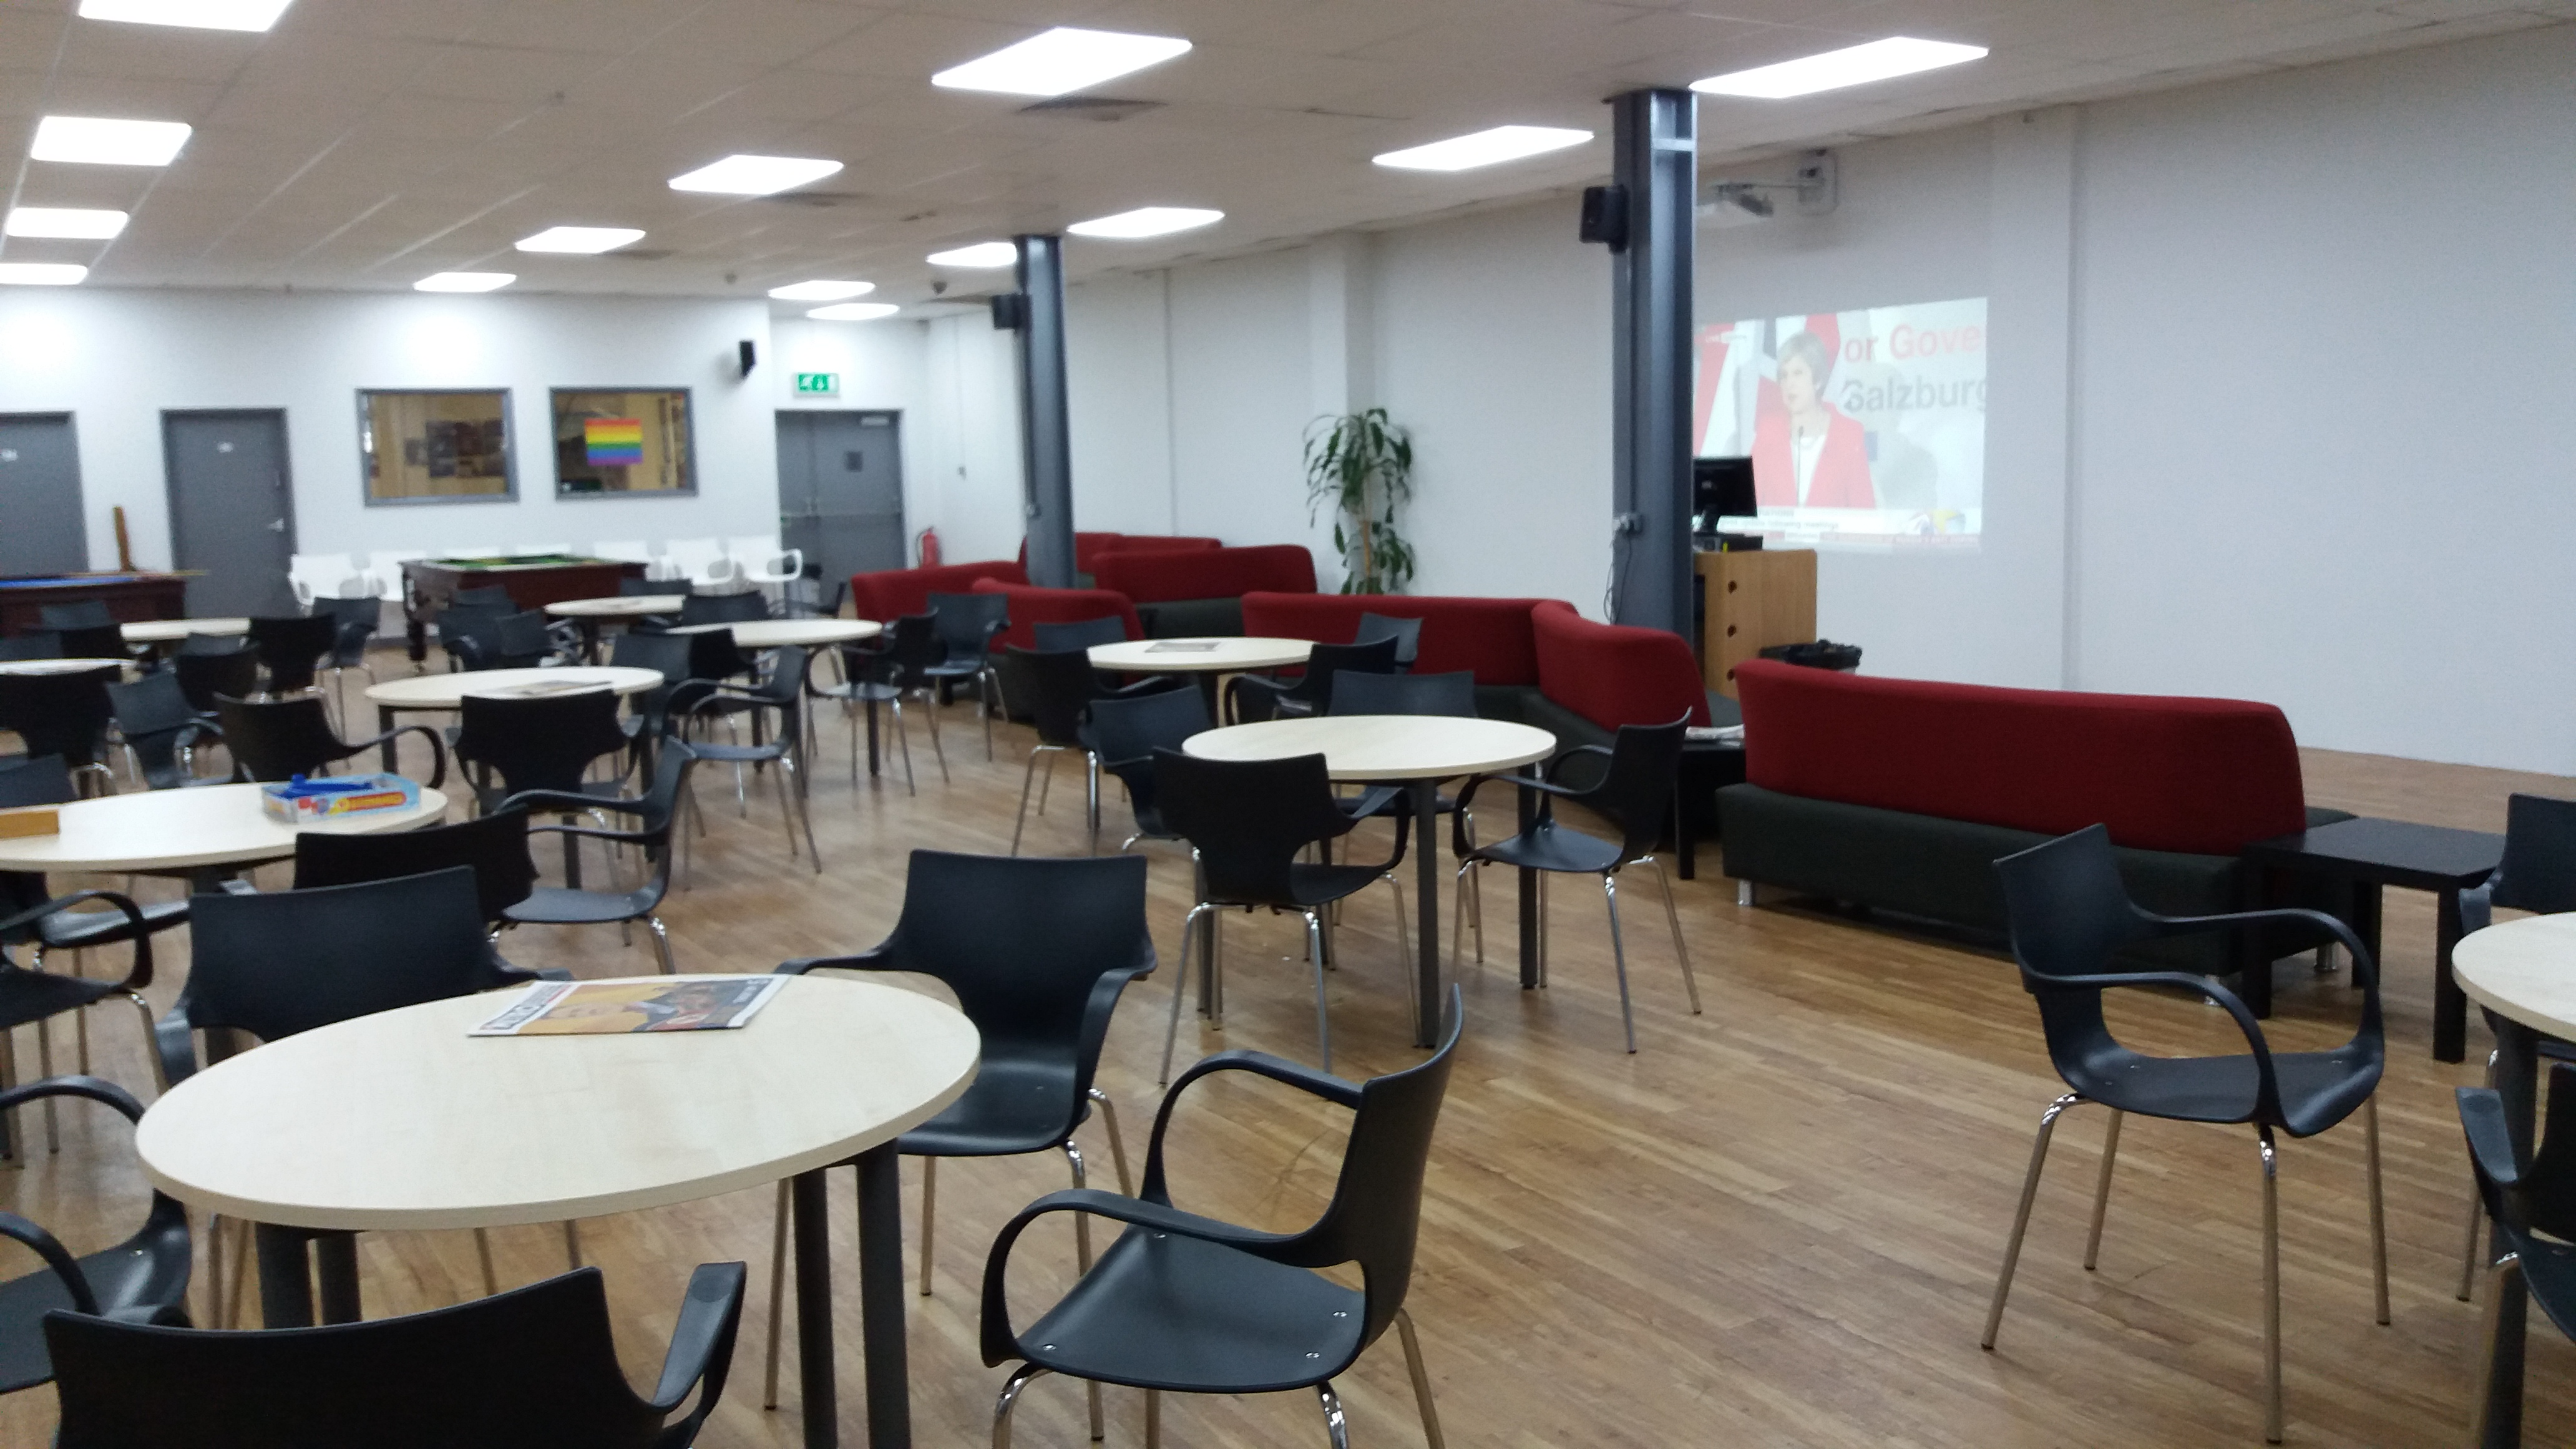 Breakout area in college